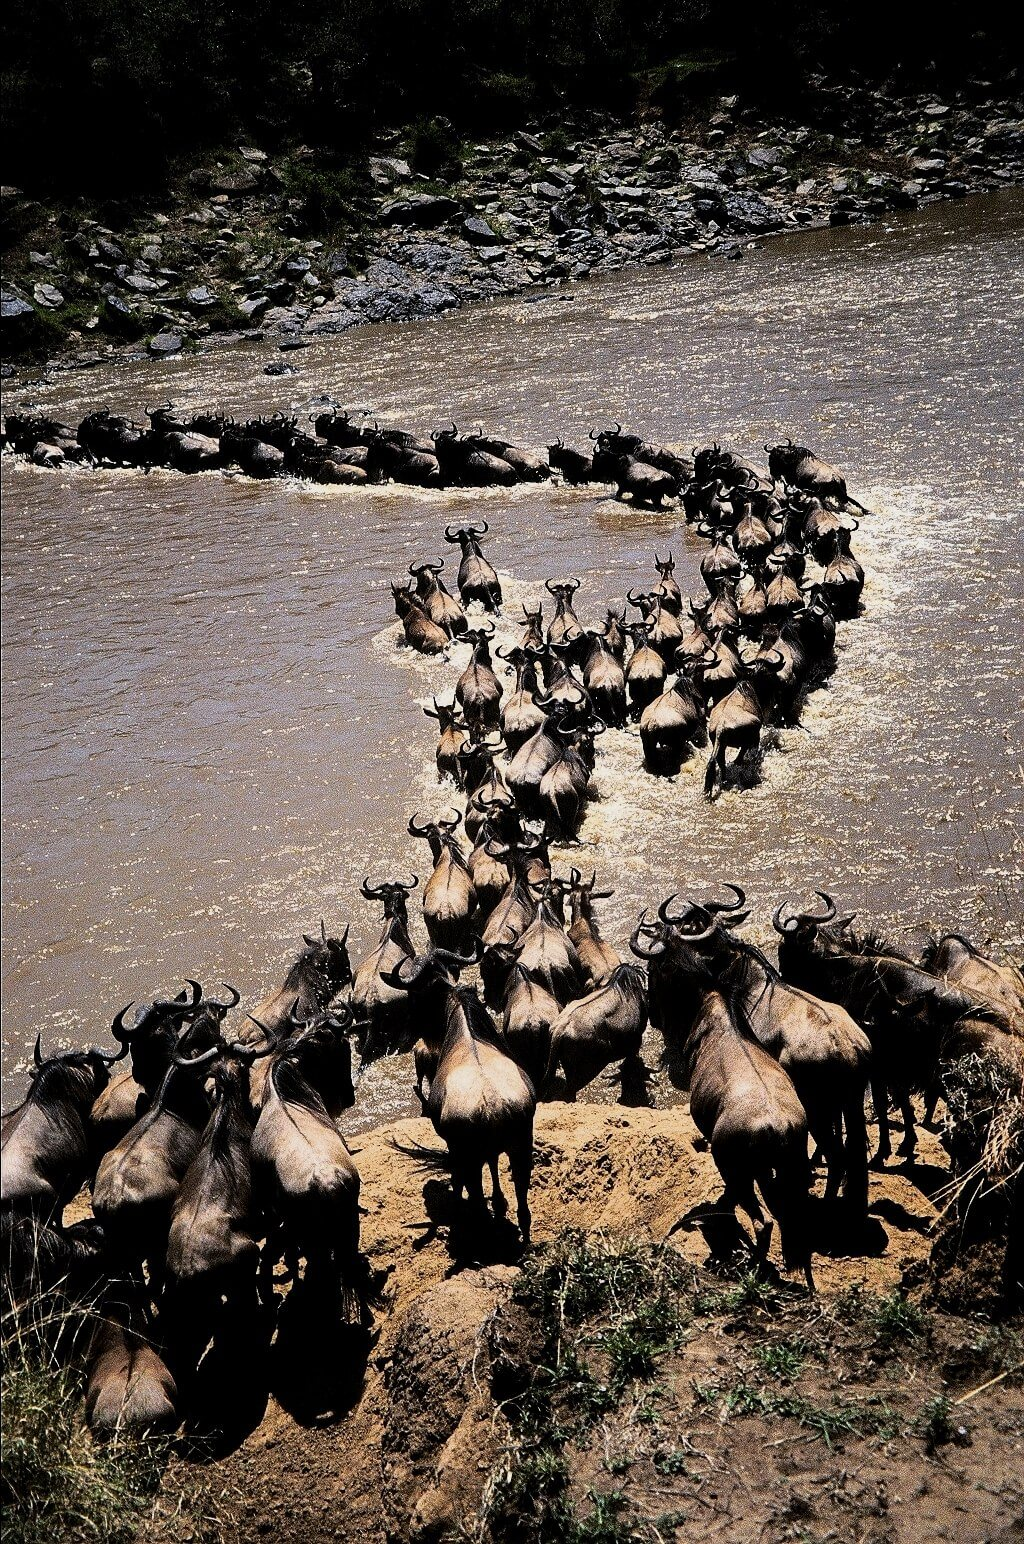 Kenya, Wildebeest crossing the Mara river